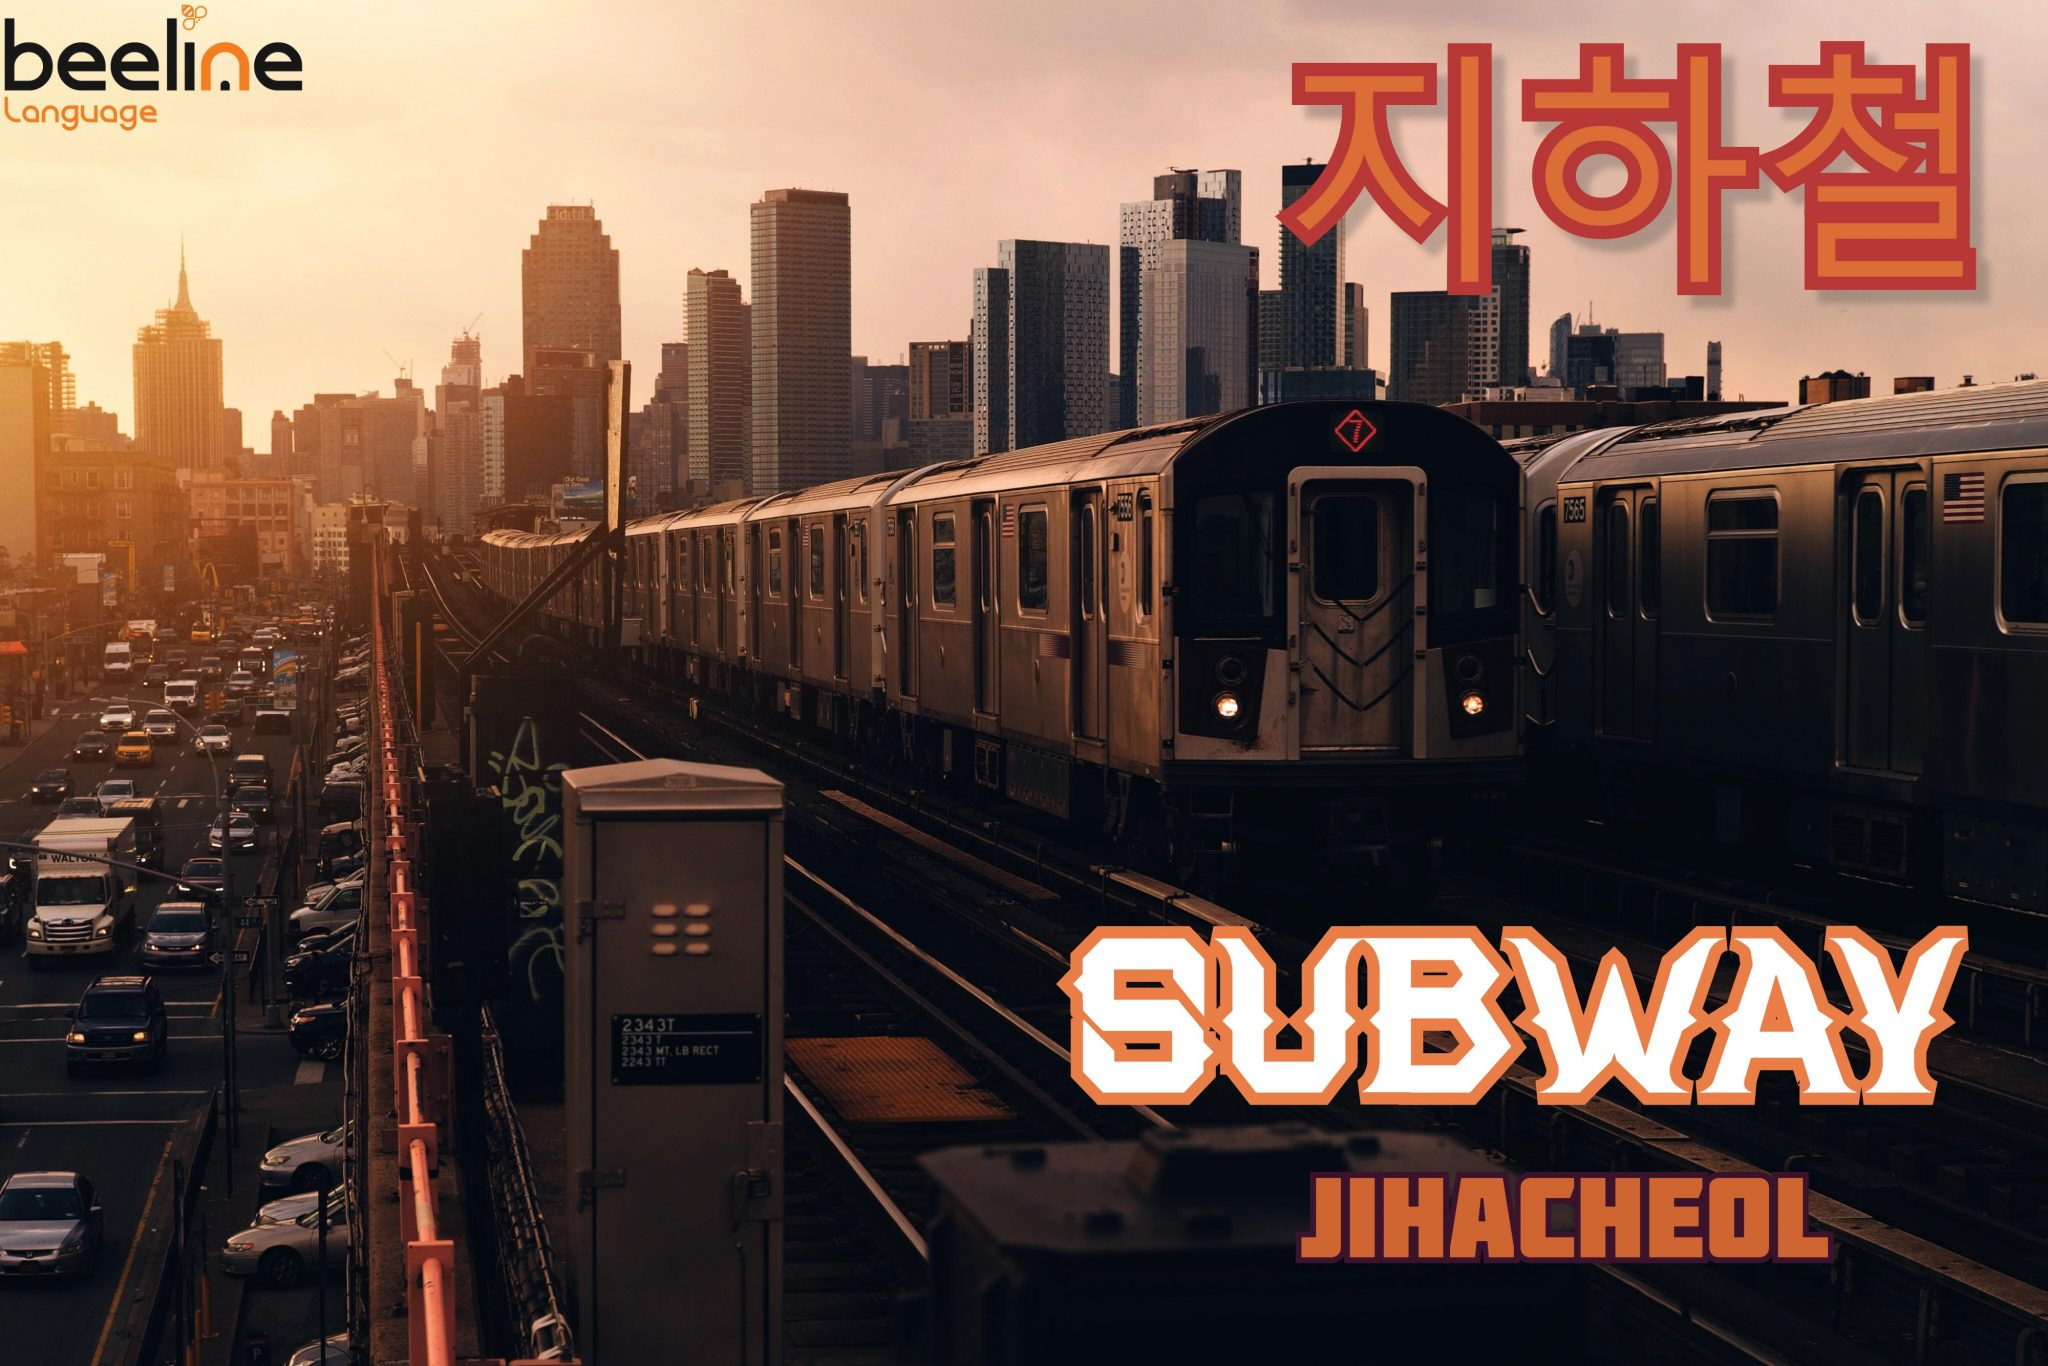 how to say subway in Korean